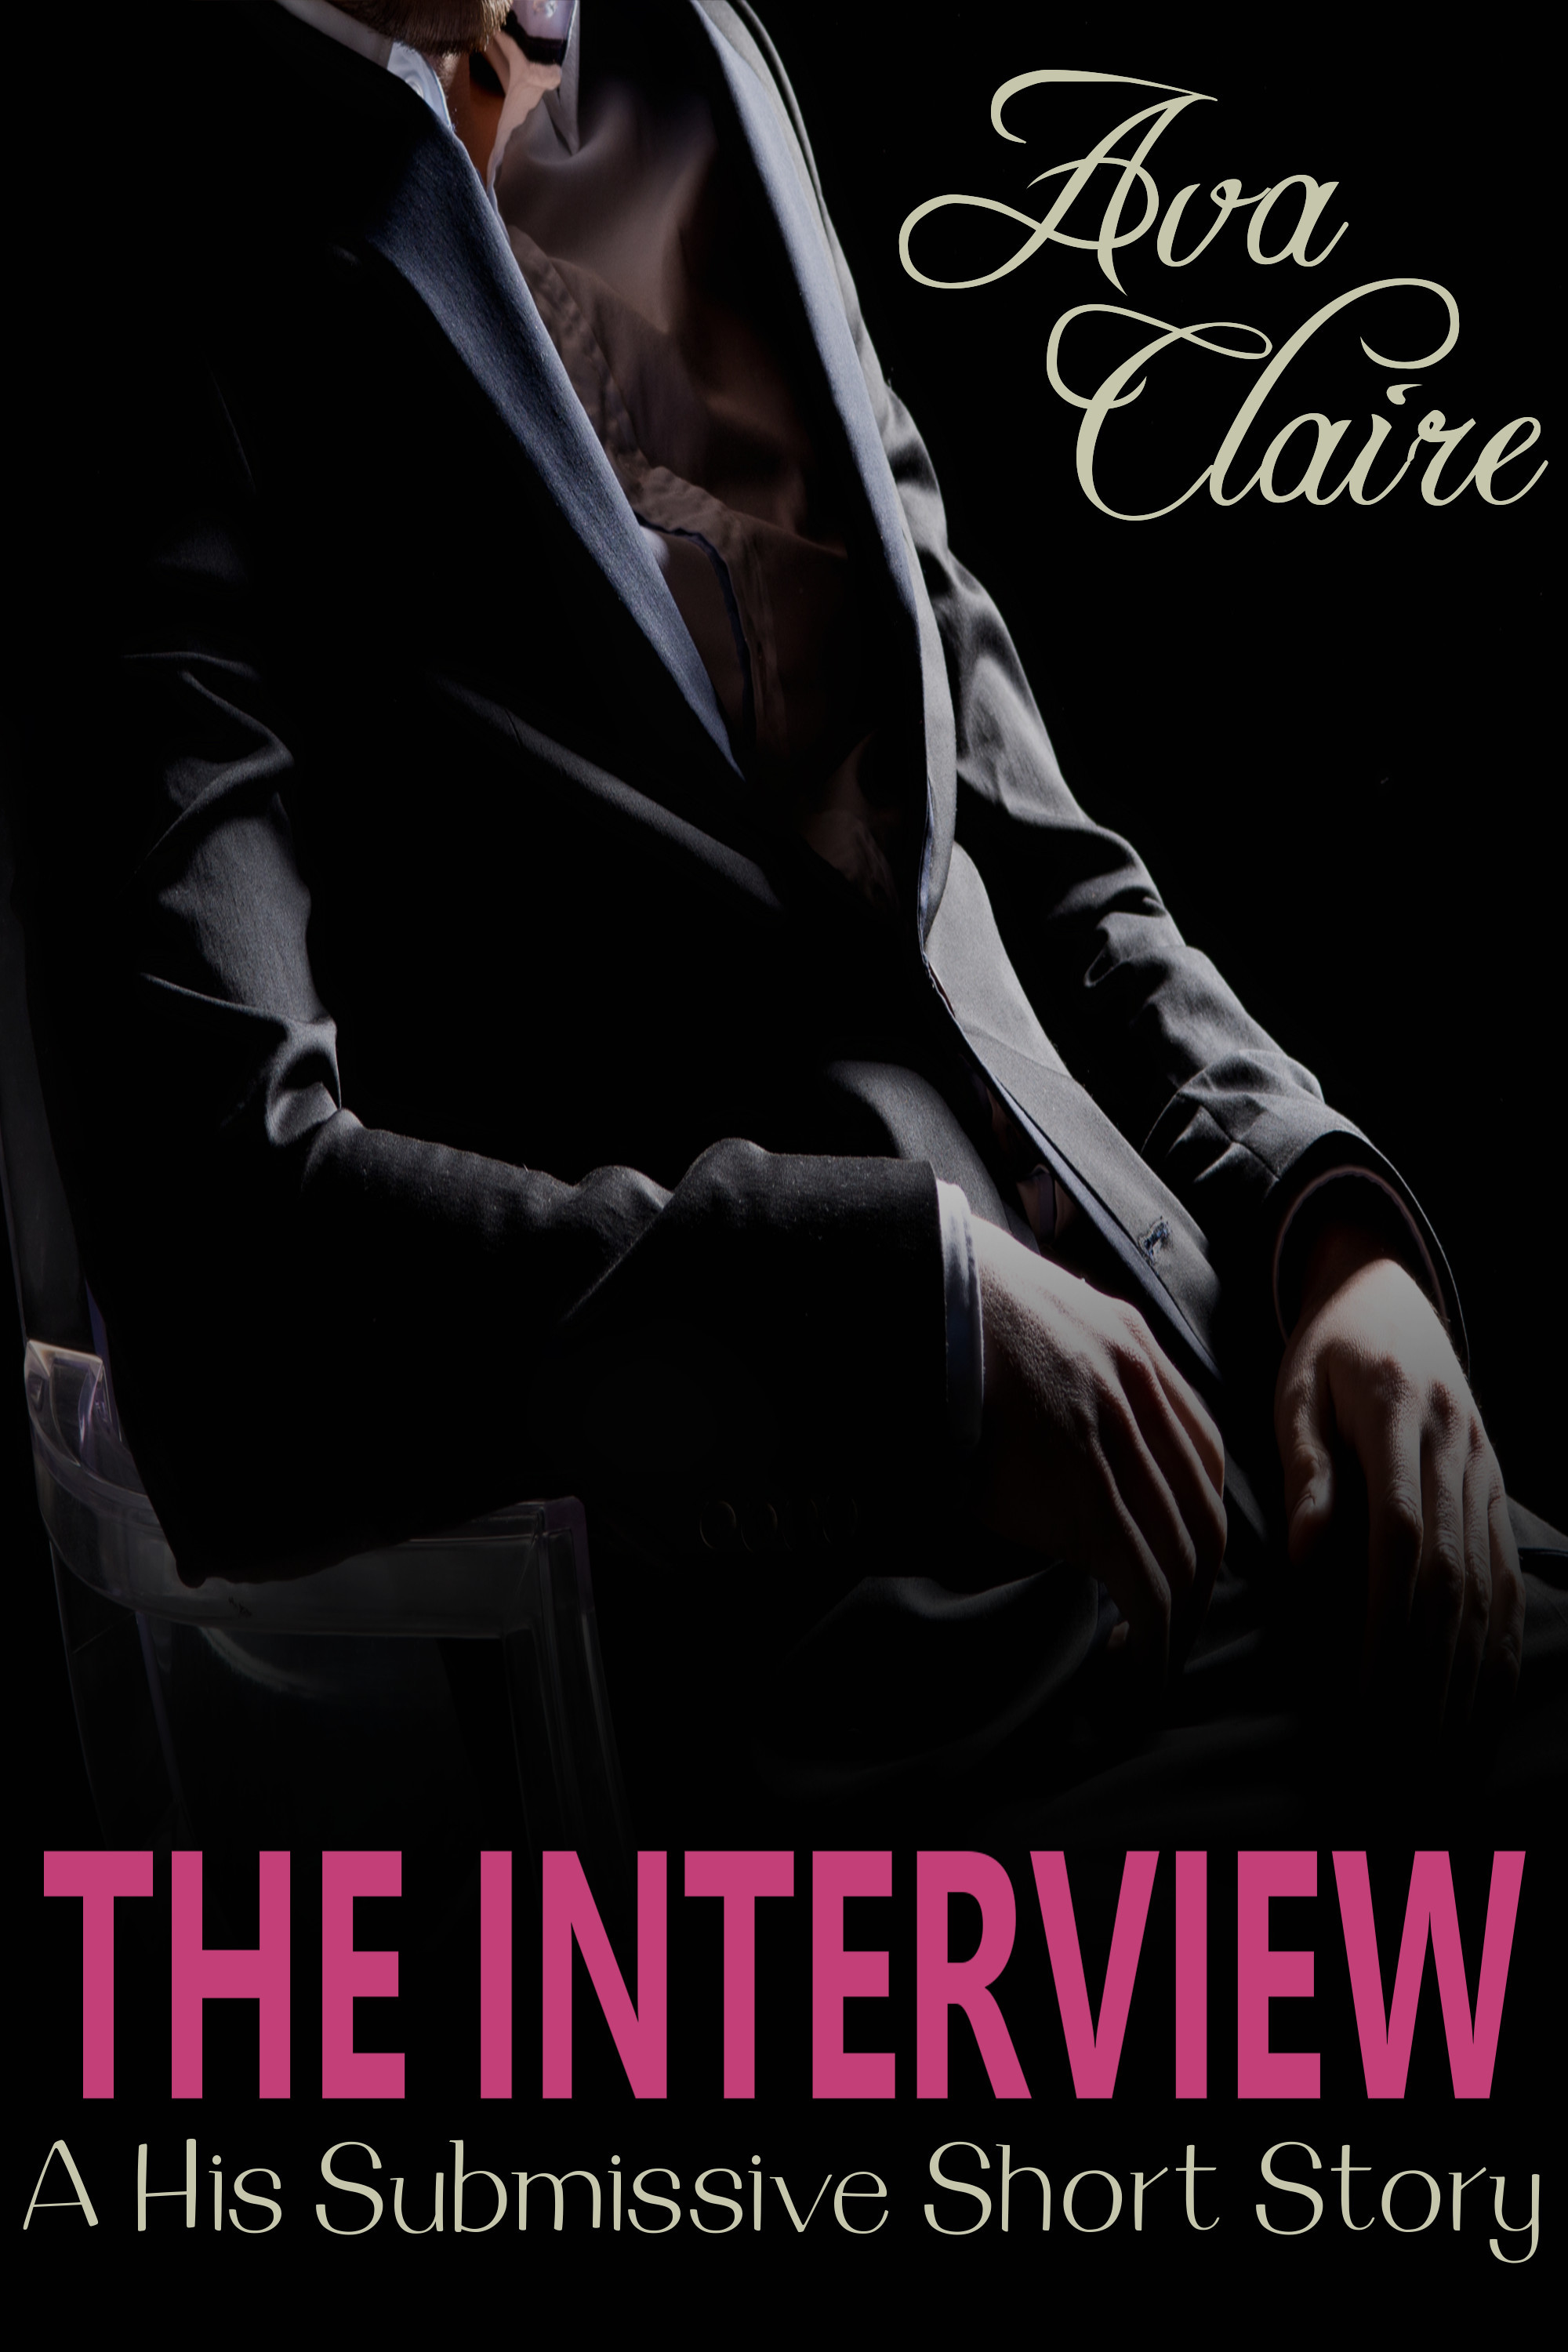 The Interview  by  Ava Claire